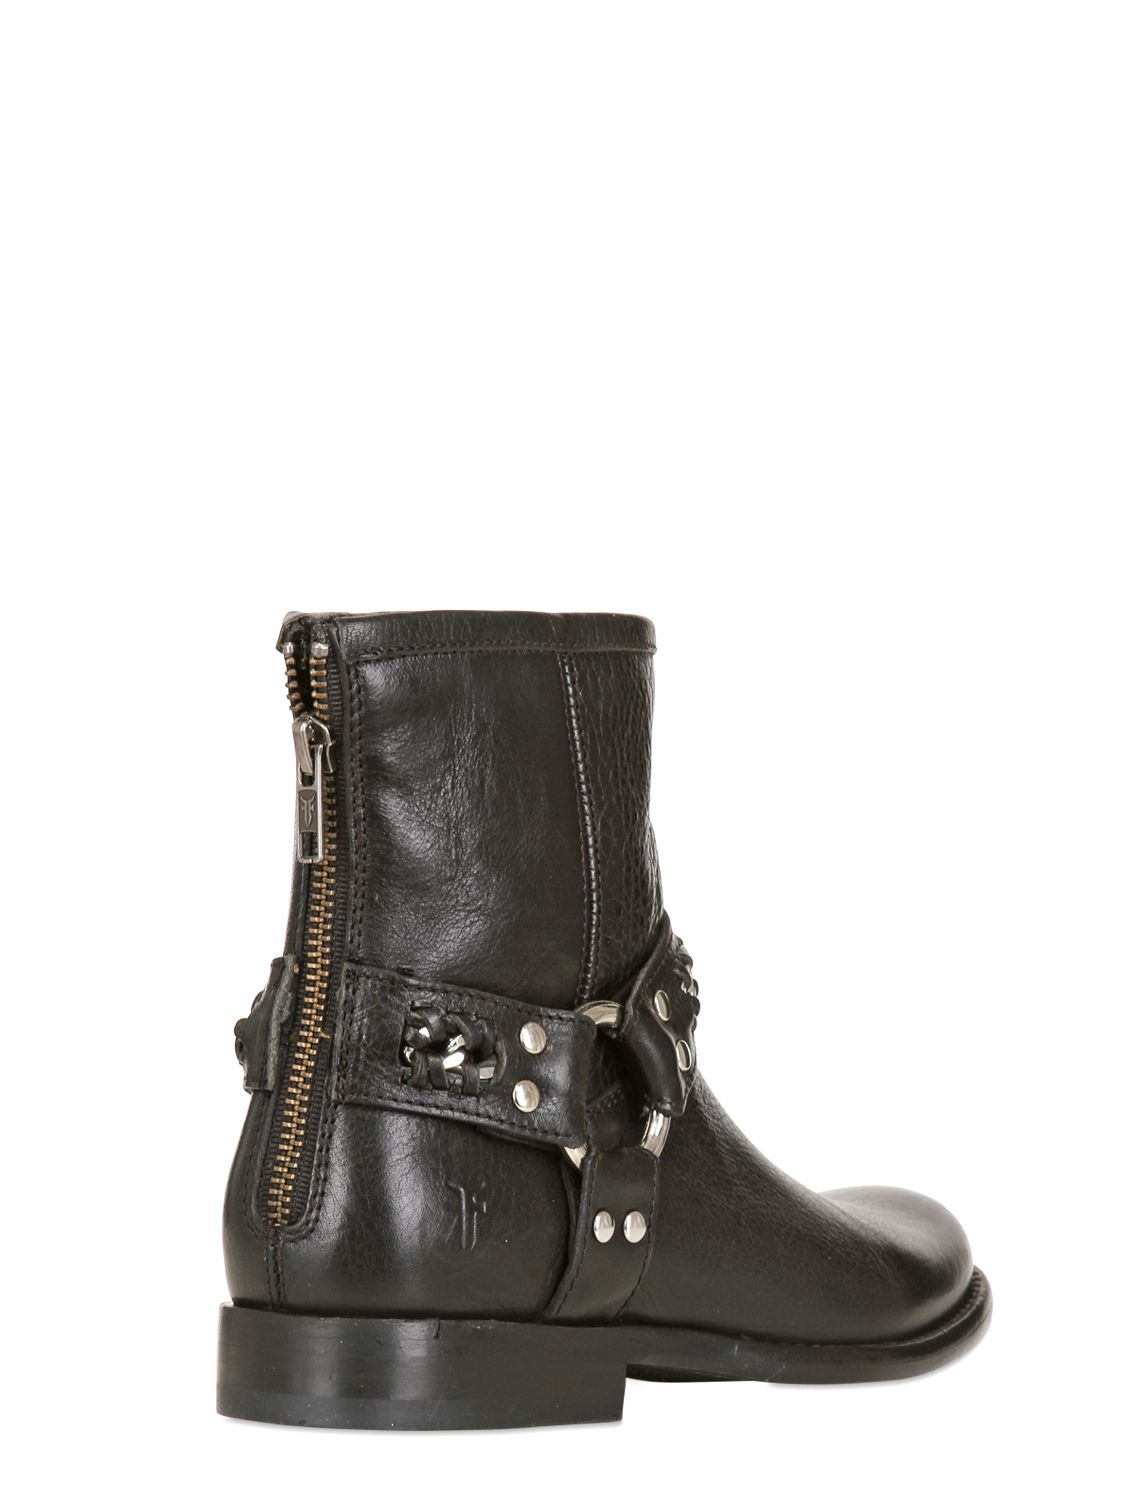 Lyst Frye Phillip Chain Leather Ankle Boots In Black